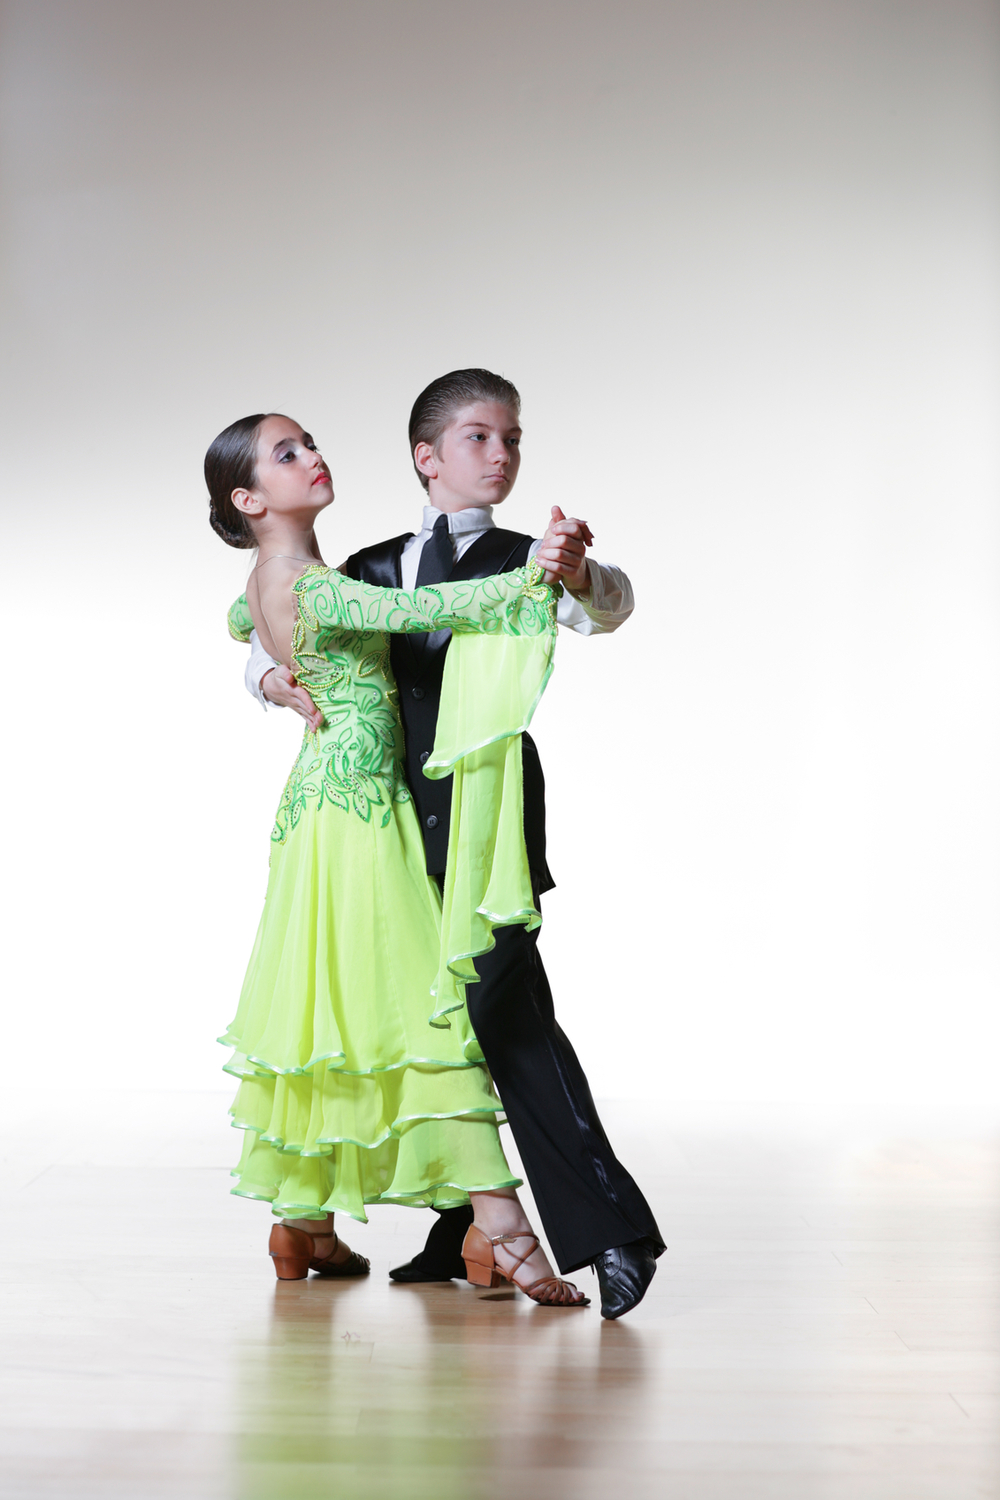 Ballroom dancing is often thought of as an activity for adults, but it can be fun for children too.